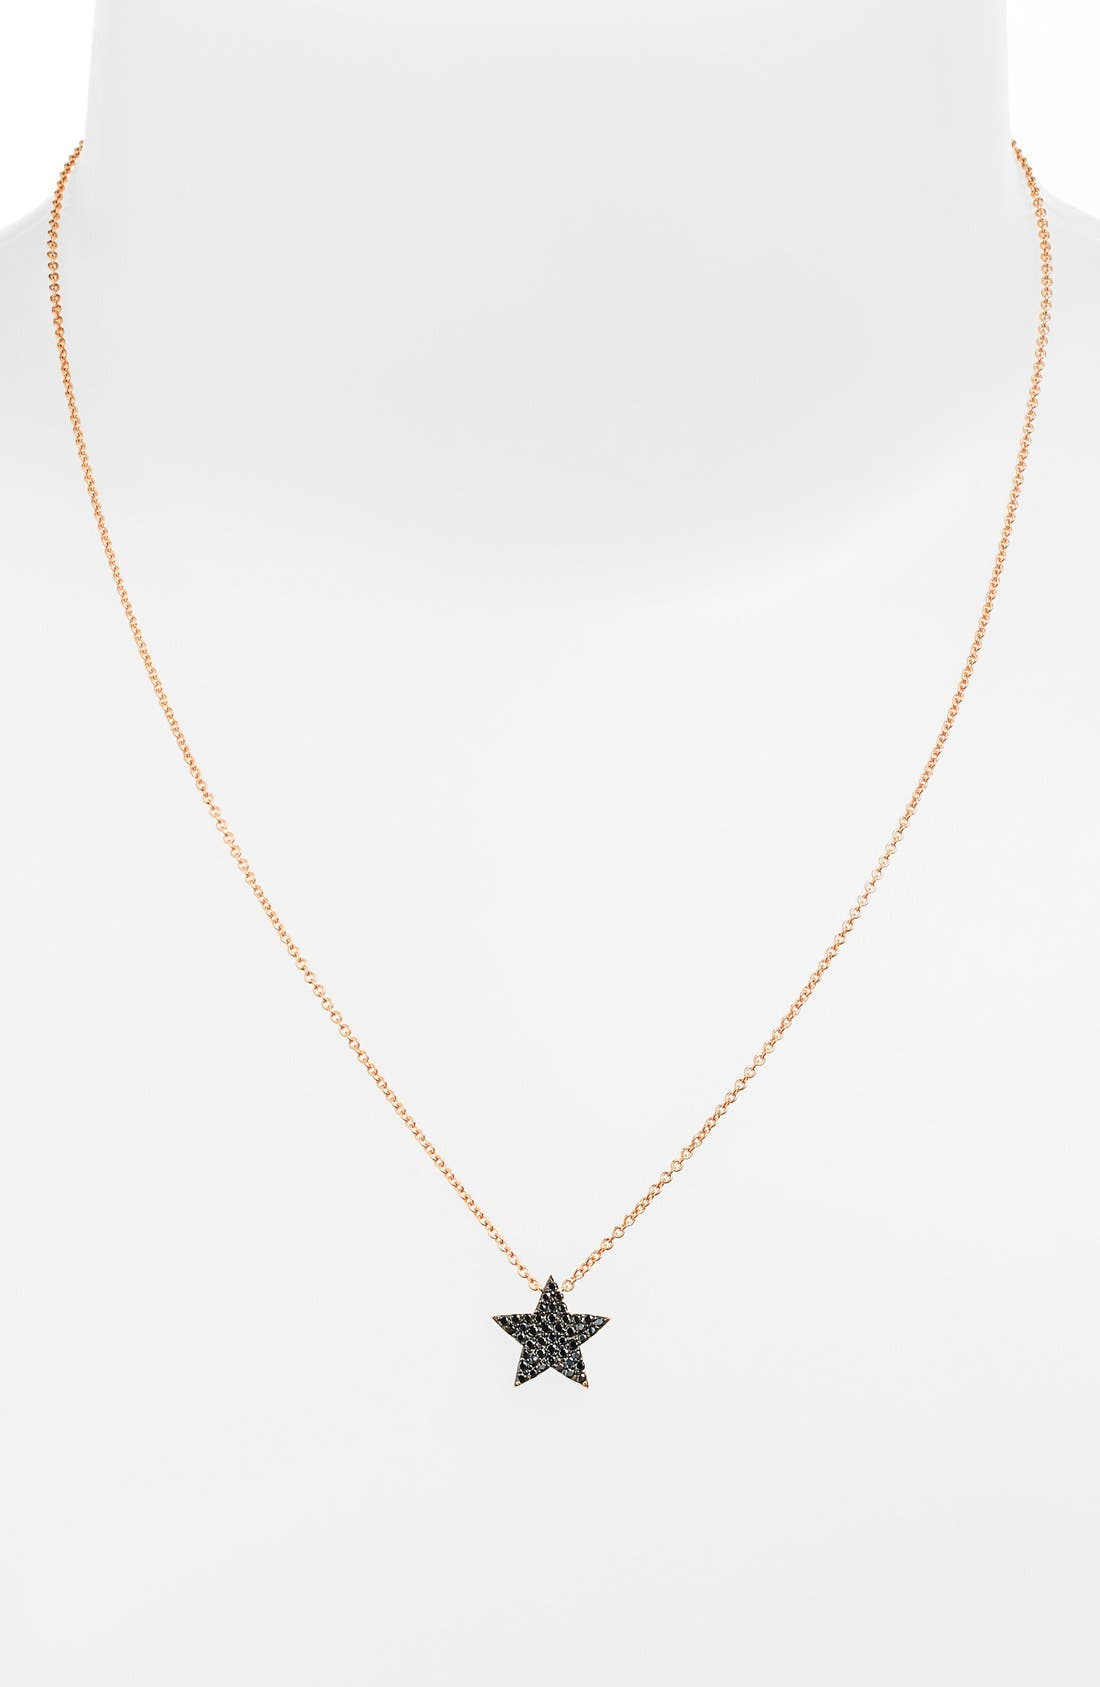 Alternate Image 1 Selected - Sugar Bean Jewelry Star Pendant Necklace